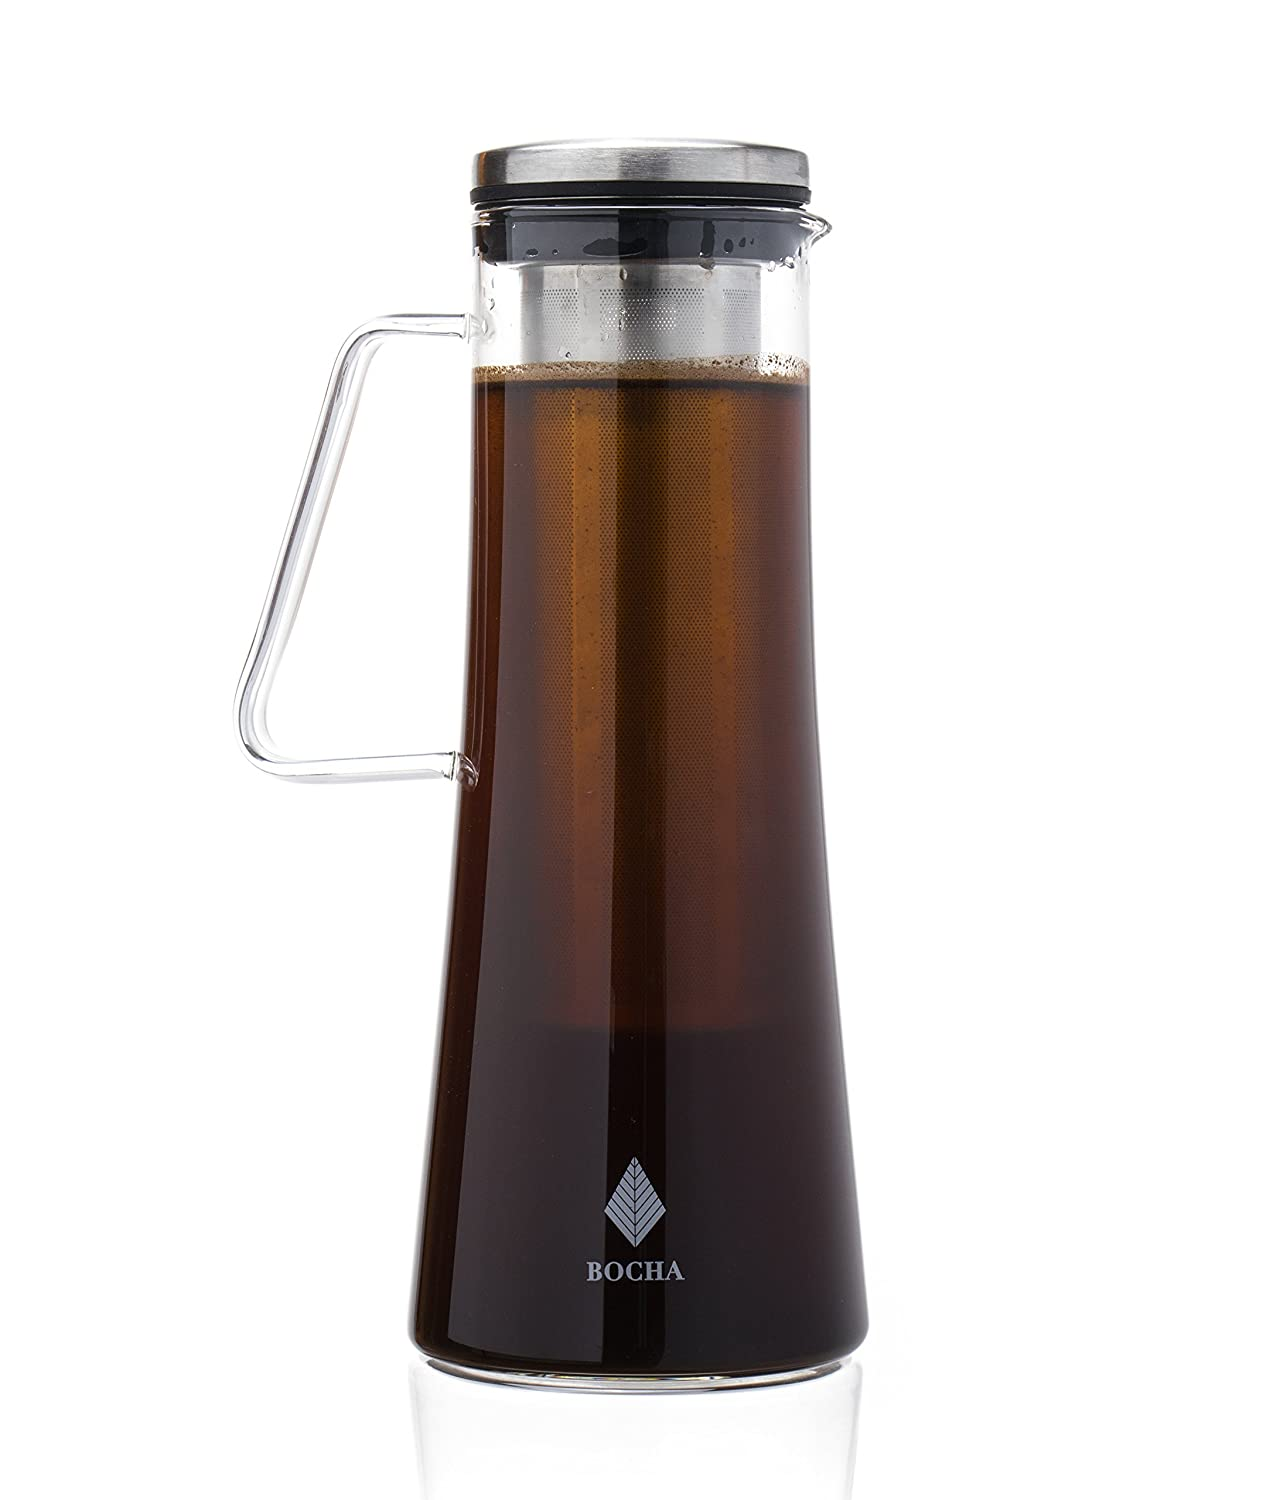 Cold Brew Iced Coffee Maker and Tea Infuser - 1L Glass Pitcher Carafe with Removable Stainless Steel Infuser, Airtight Lid and Free Cleaning Brush BOCHA CB1